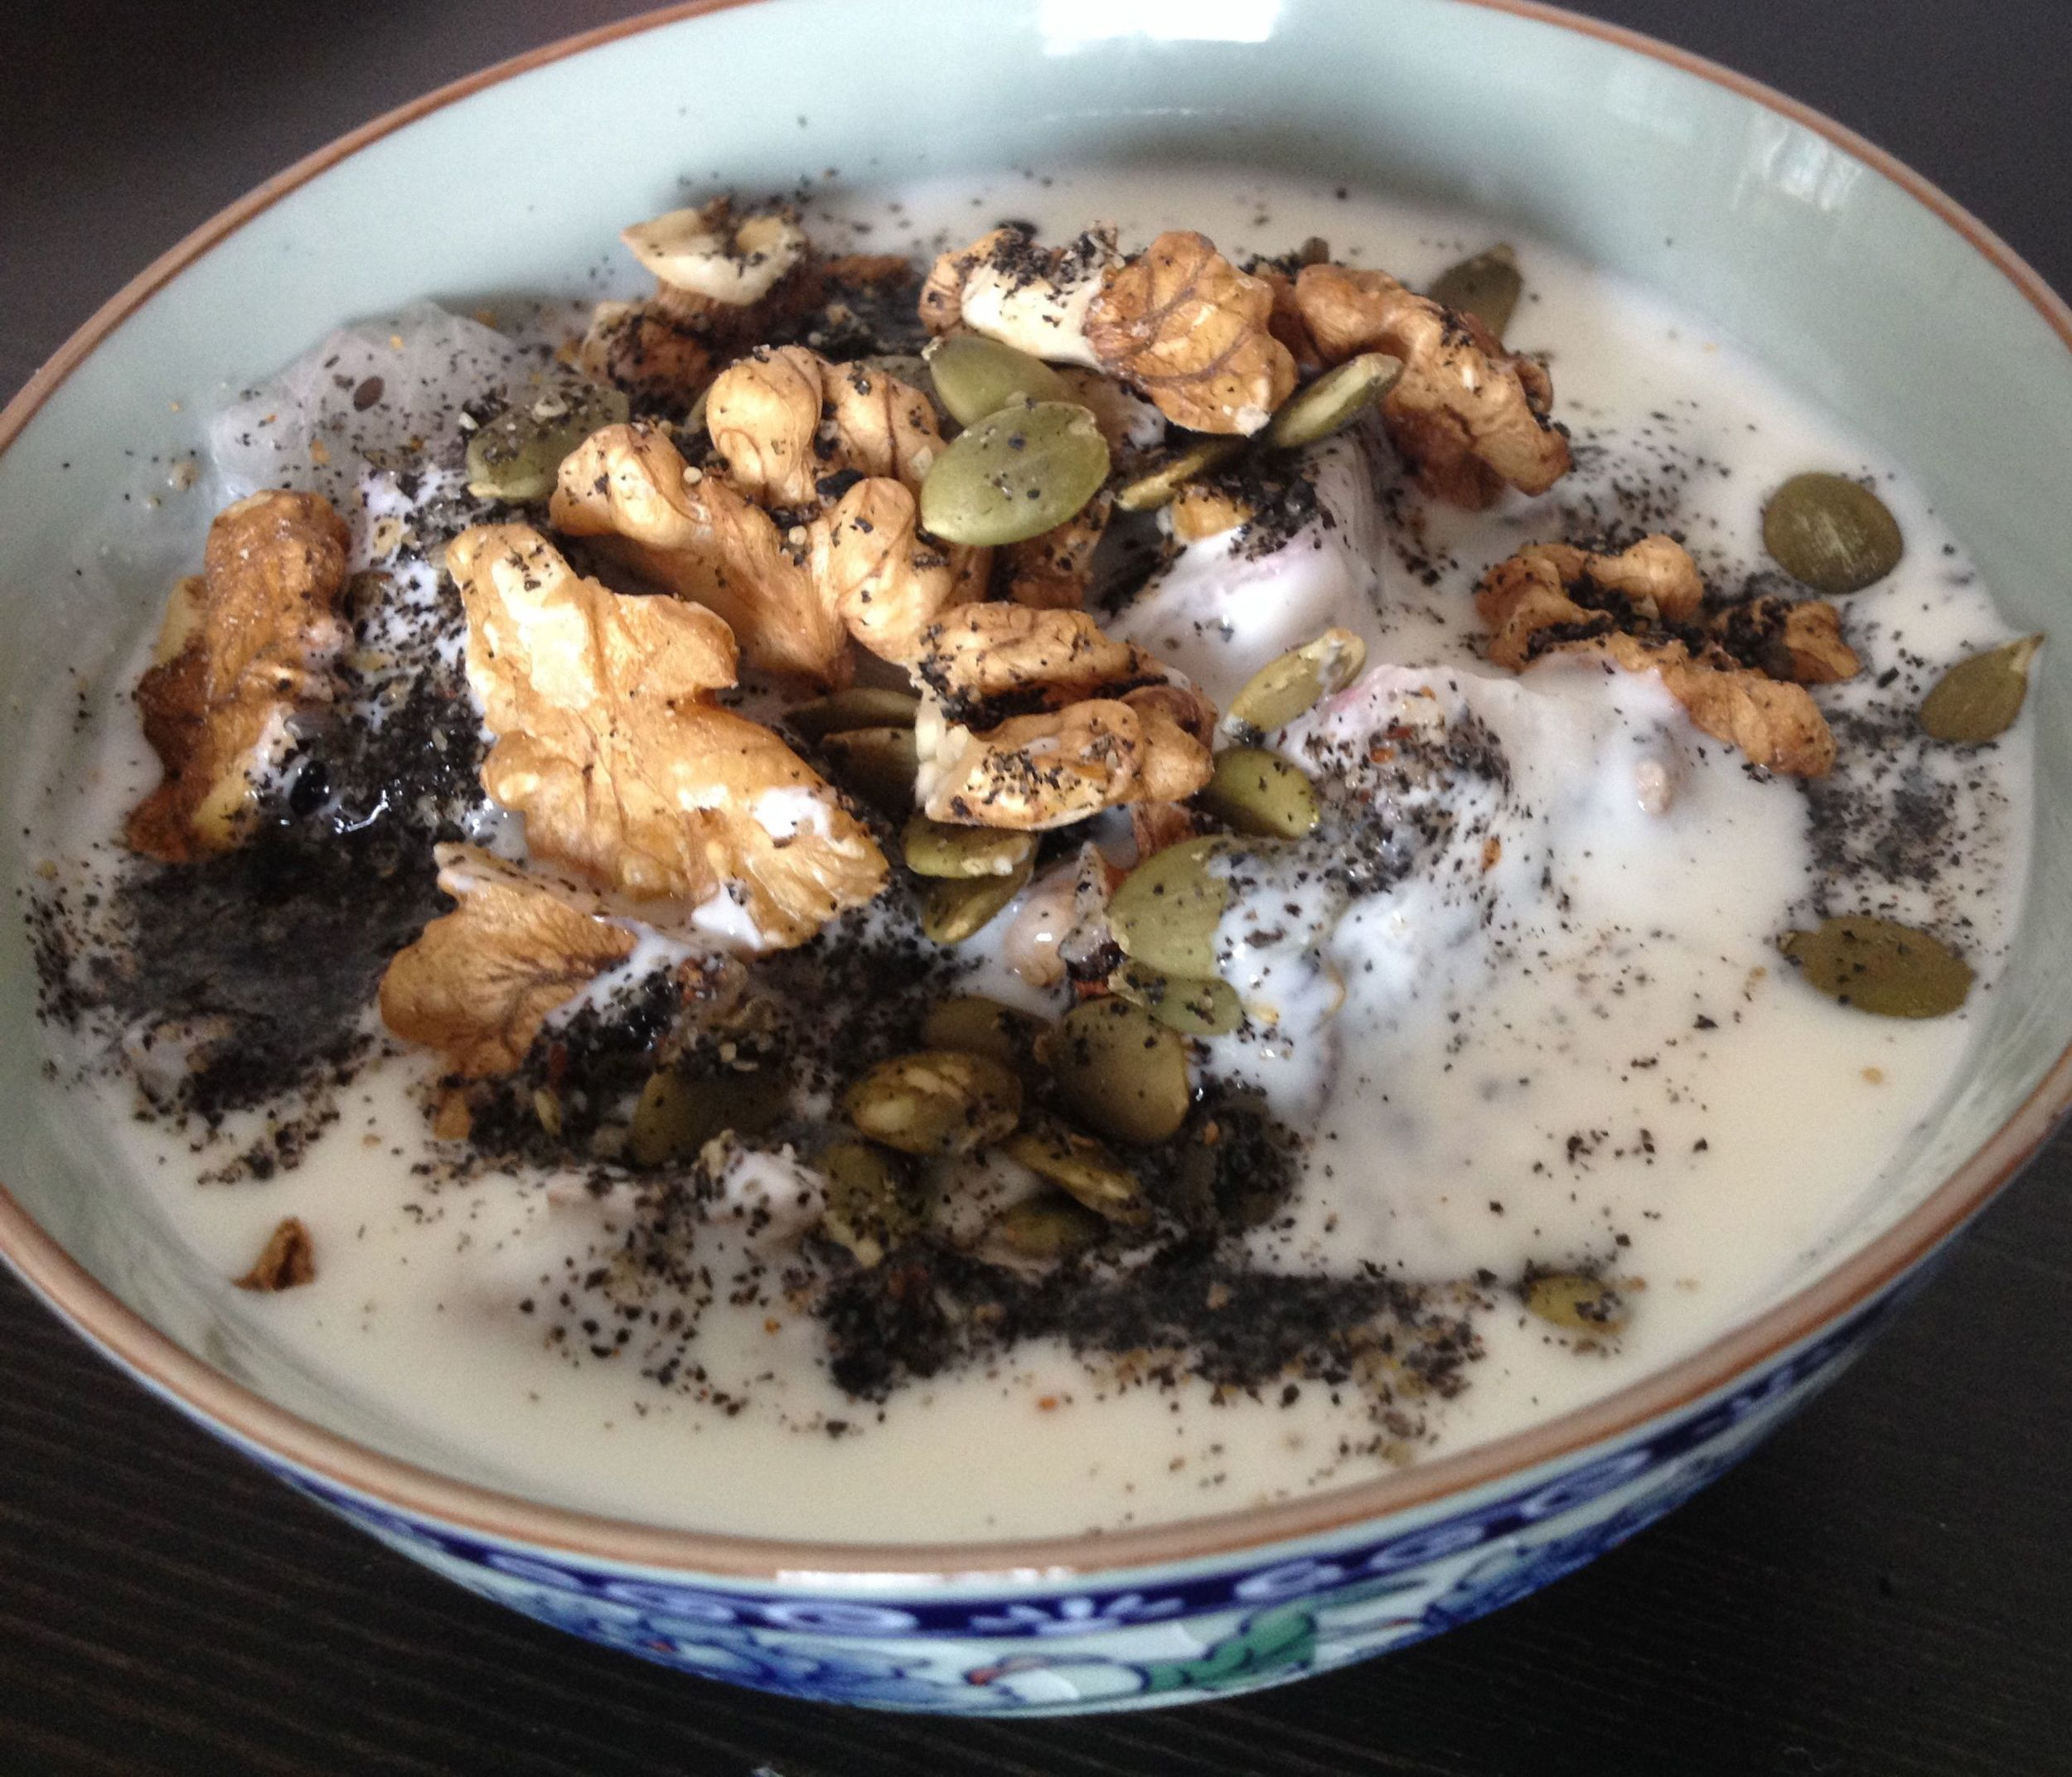 Walnuts, seeds, dragon fruit and topped with black sesame powder